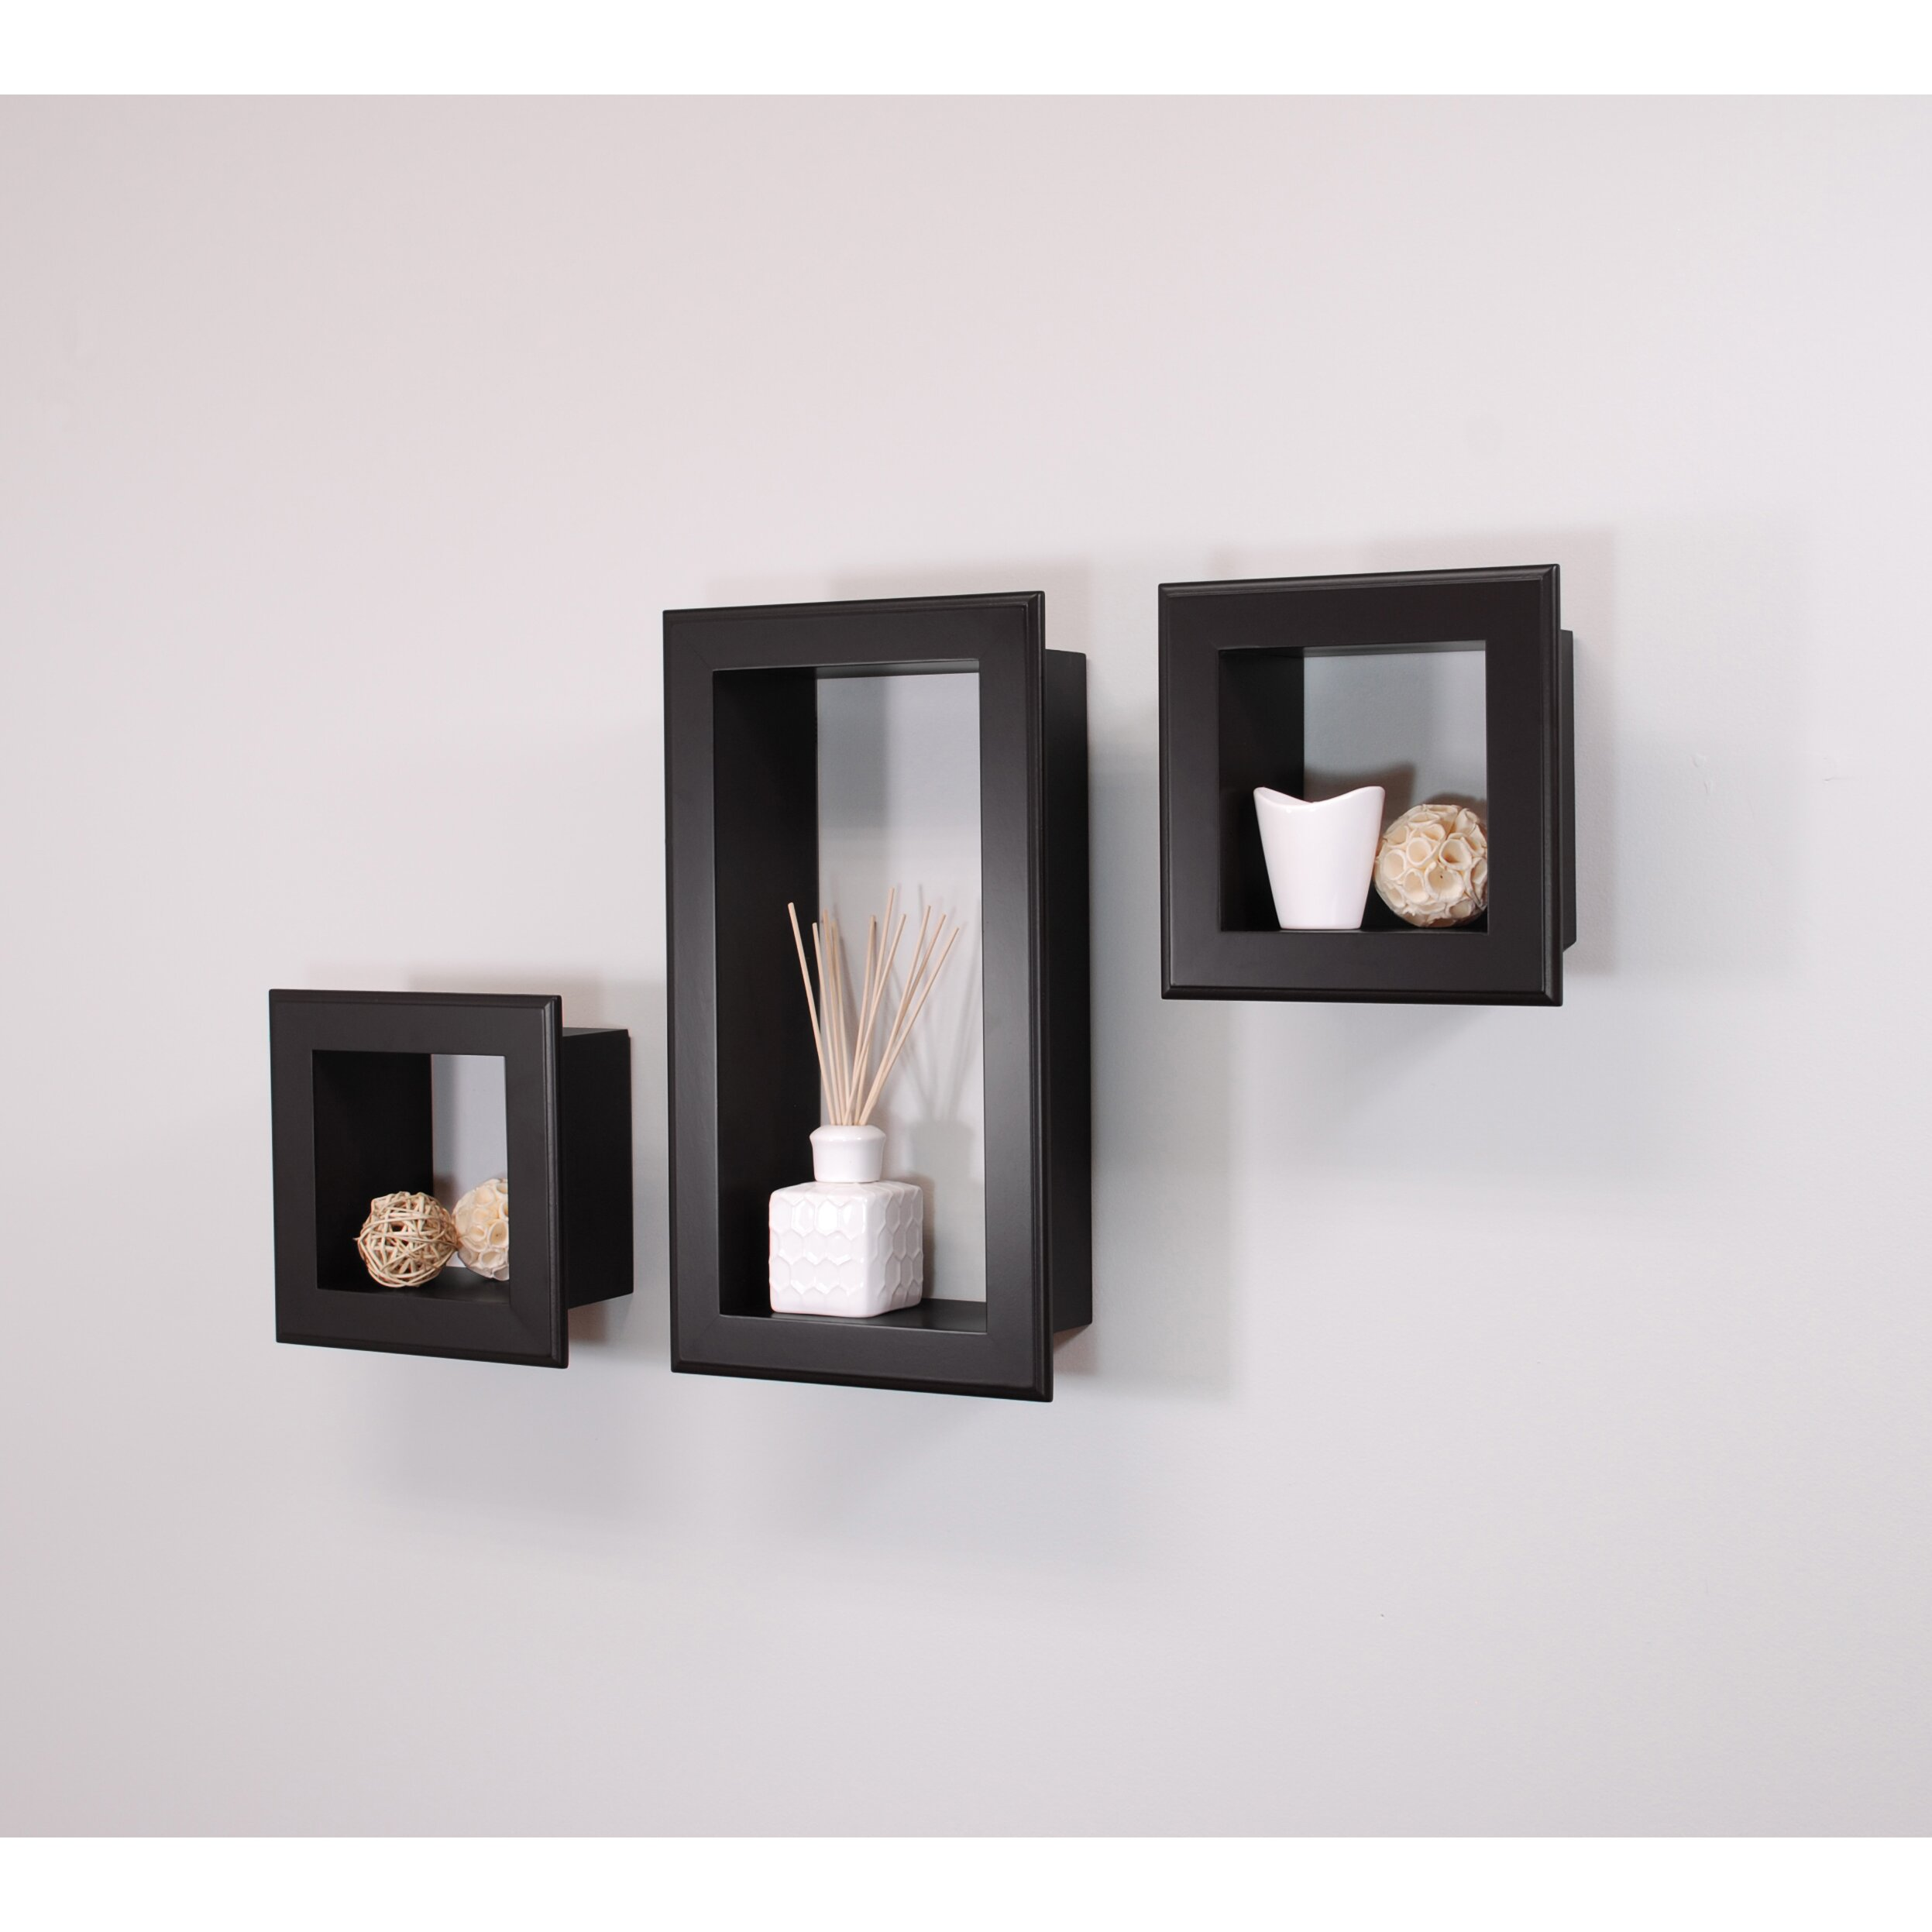 Nexxt Design Cubbi Framed 3 Piece Wall Shelf Set Reviews